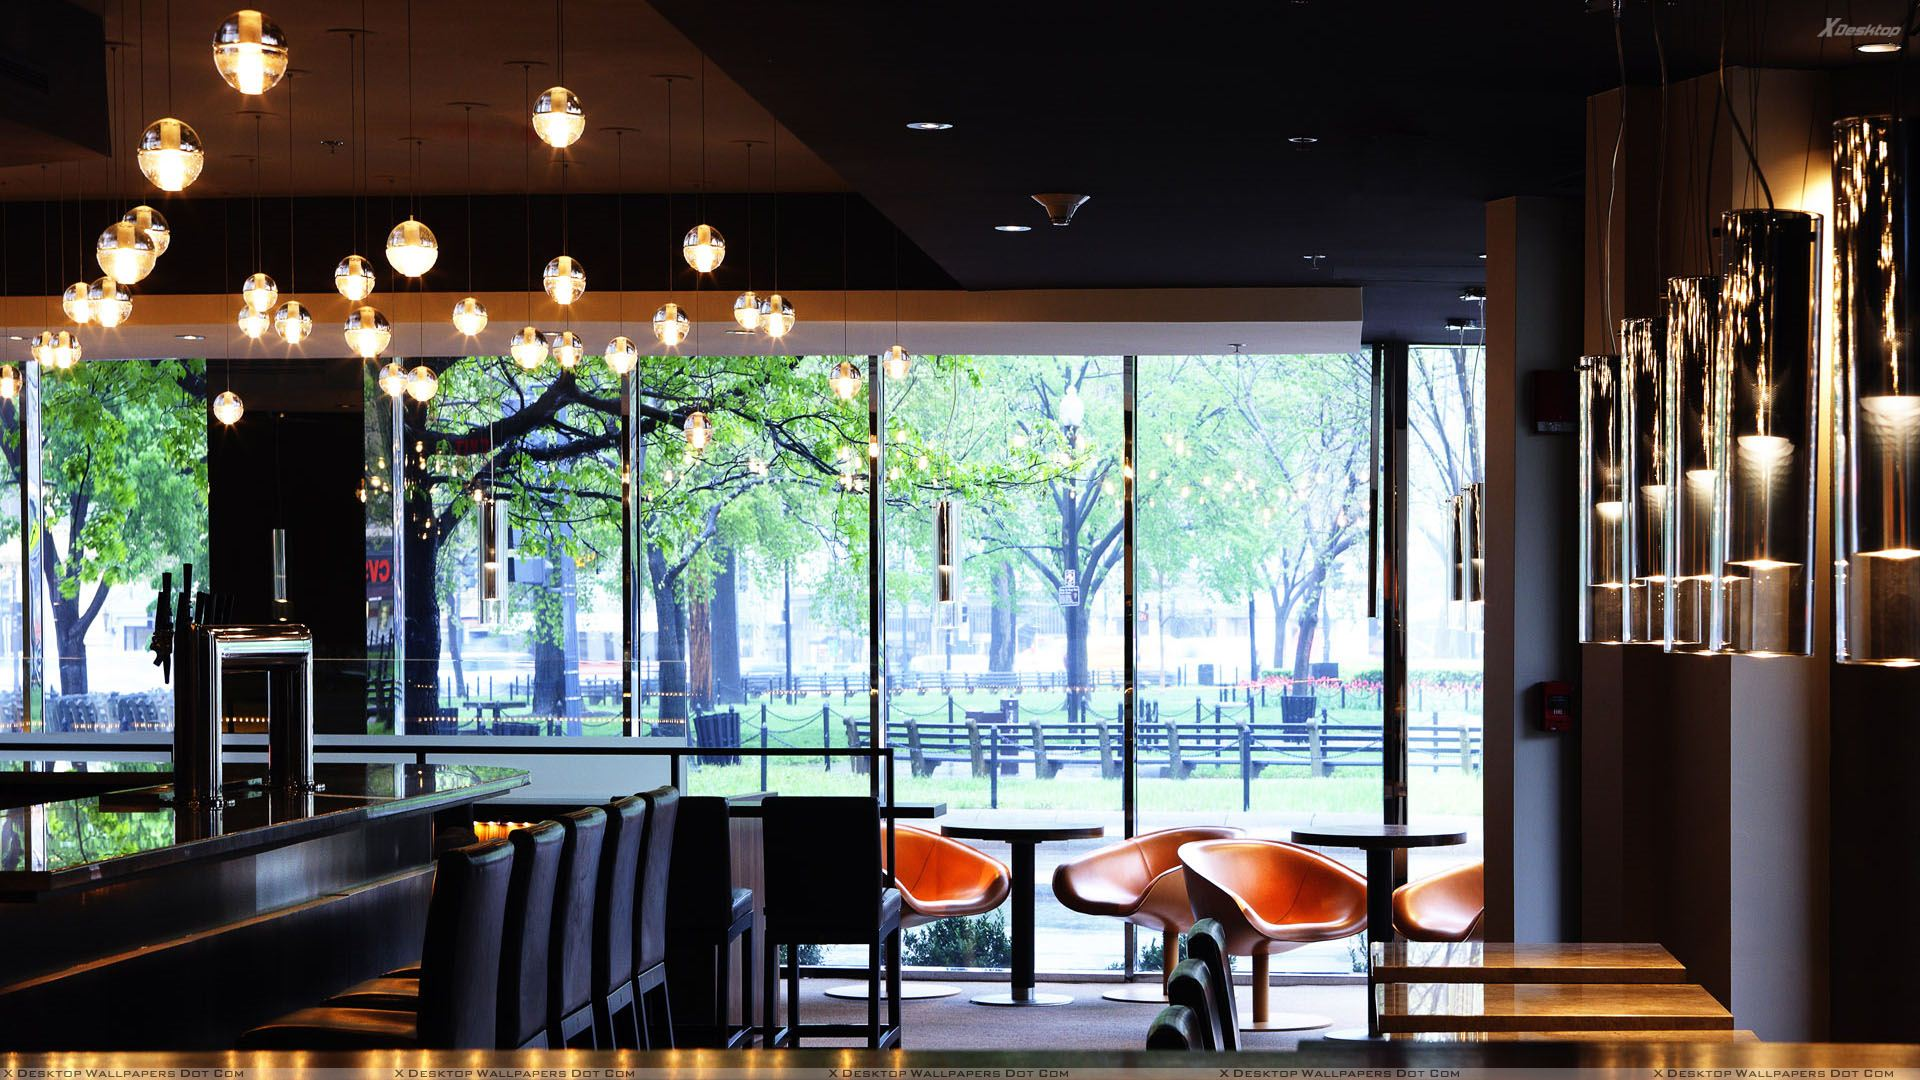 Chairs and table in coffee bar wallpaper for Restaurant window design